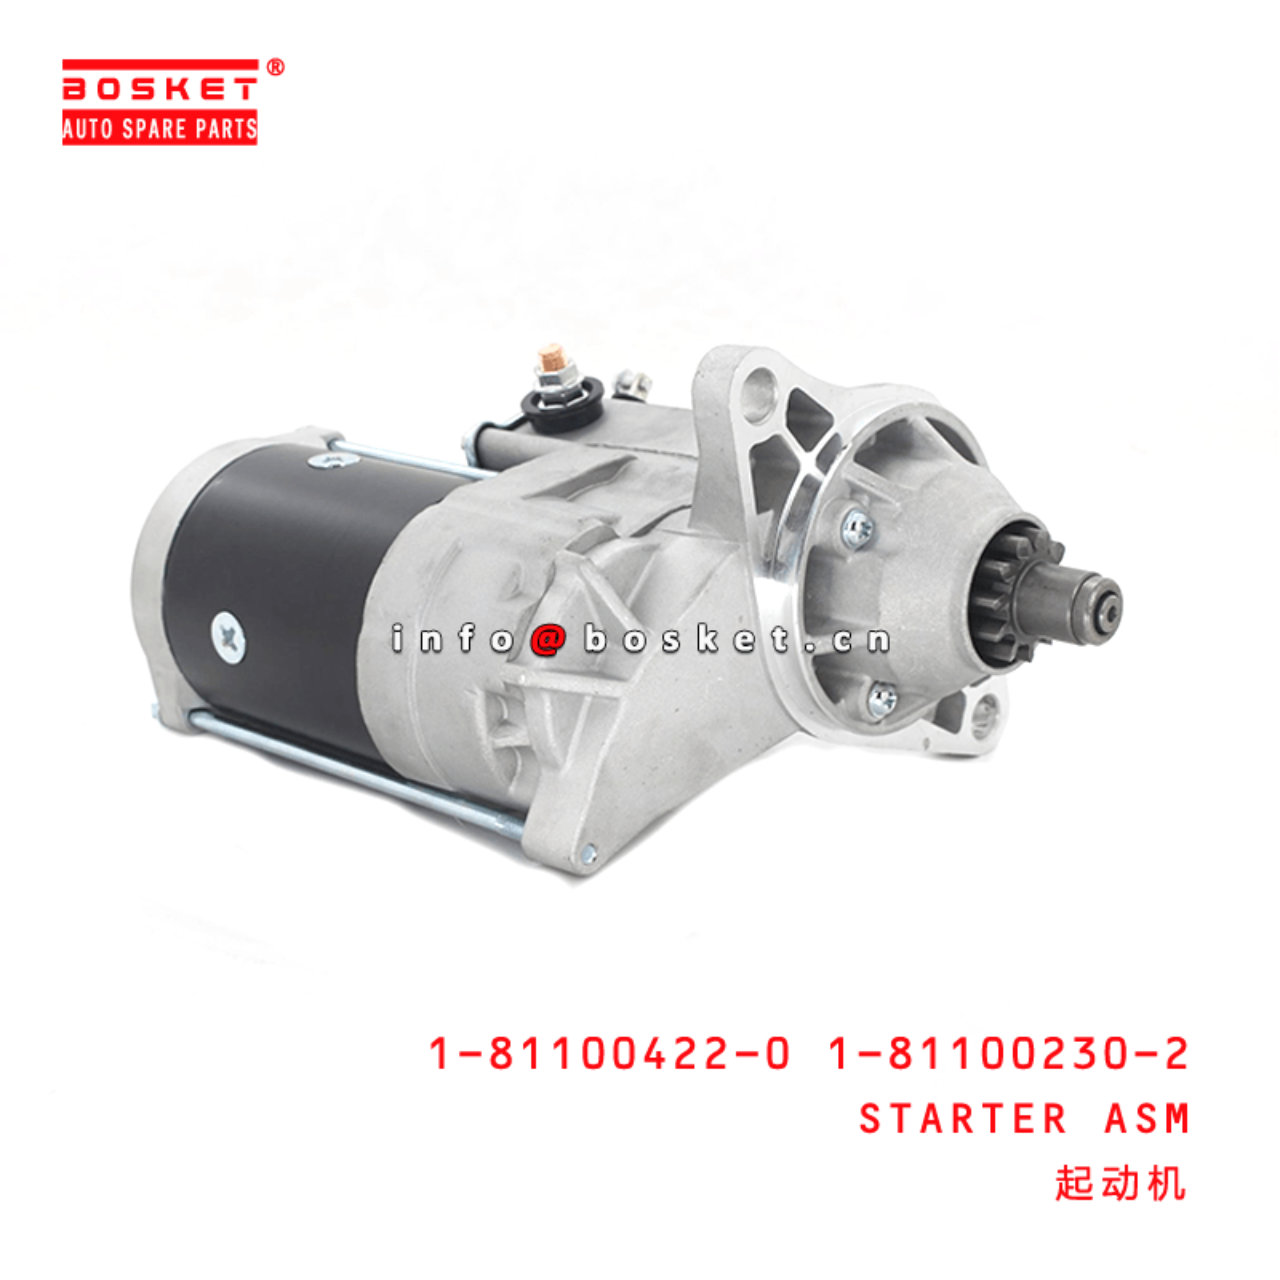 1-81100422-0 1-81100230-2 Starter Assembly 1811004220 1811002302 Suitable for ISUZU FRR FTR FVR 6SD